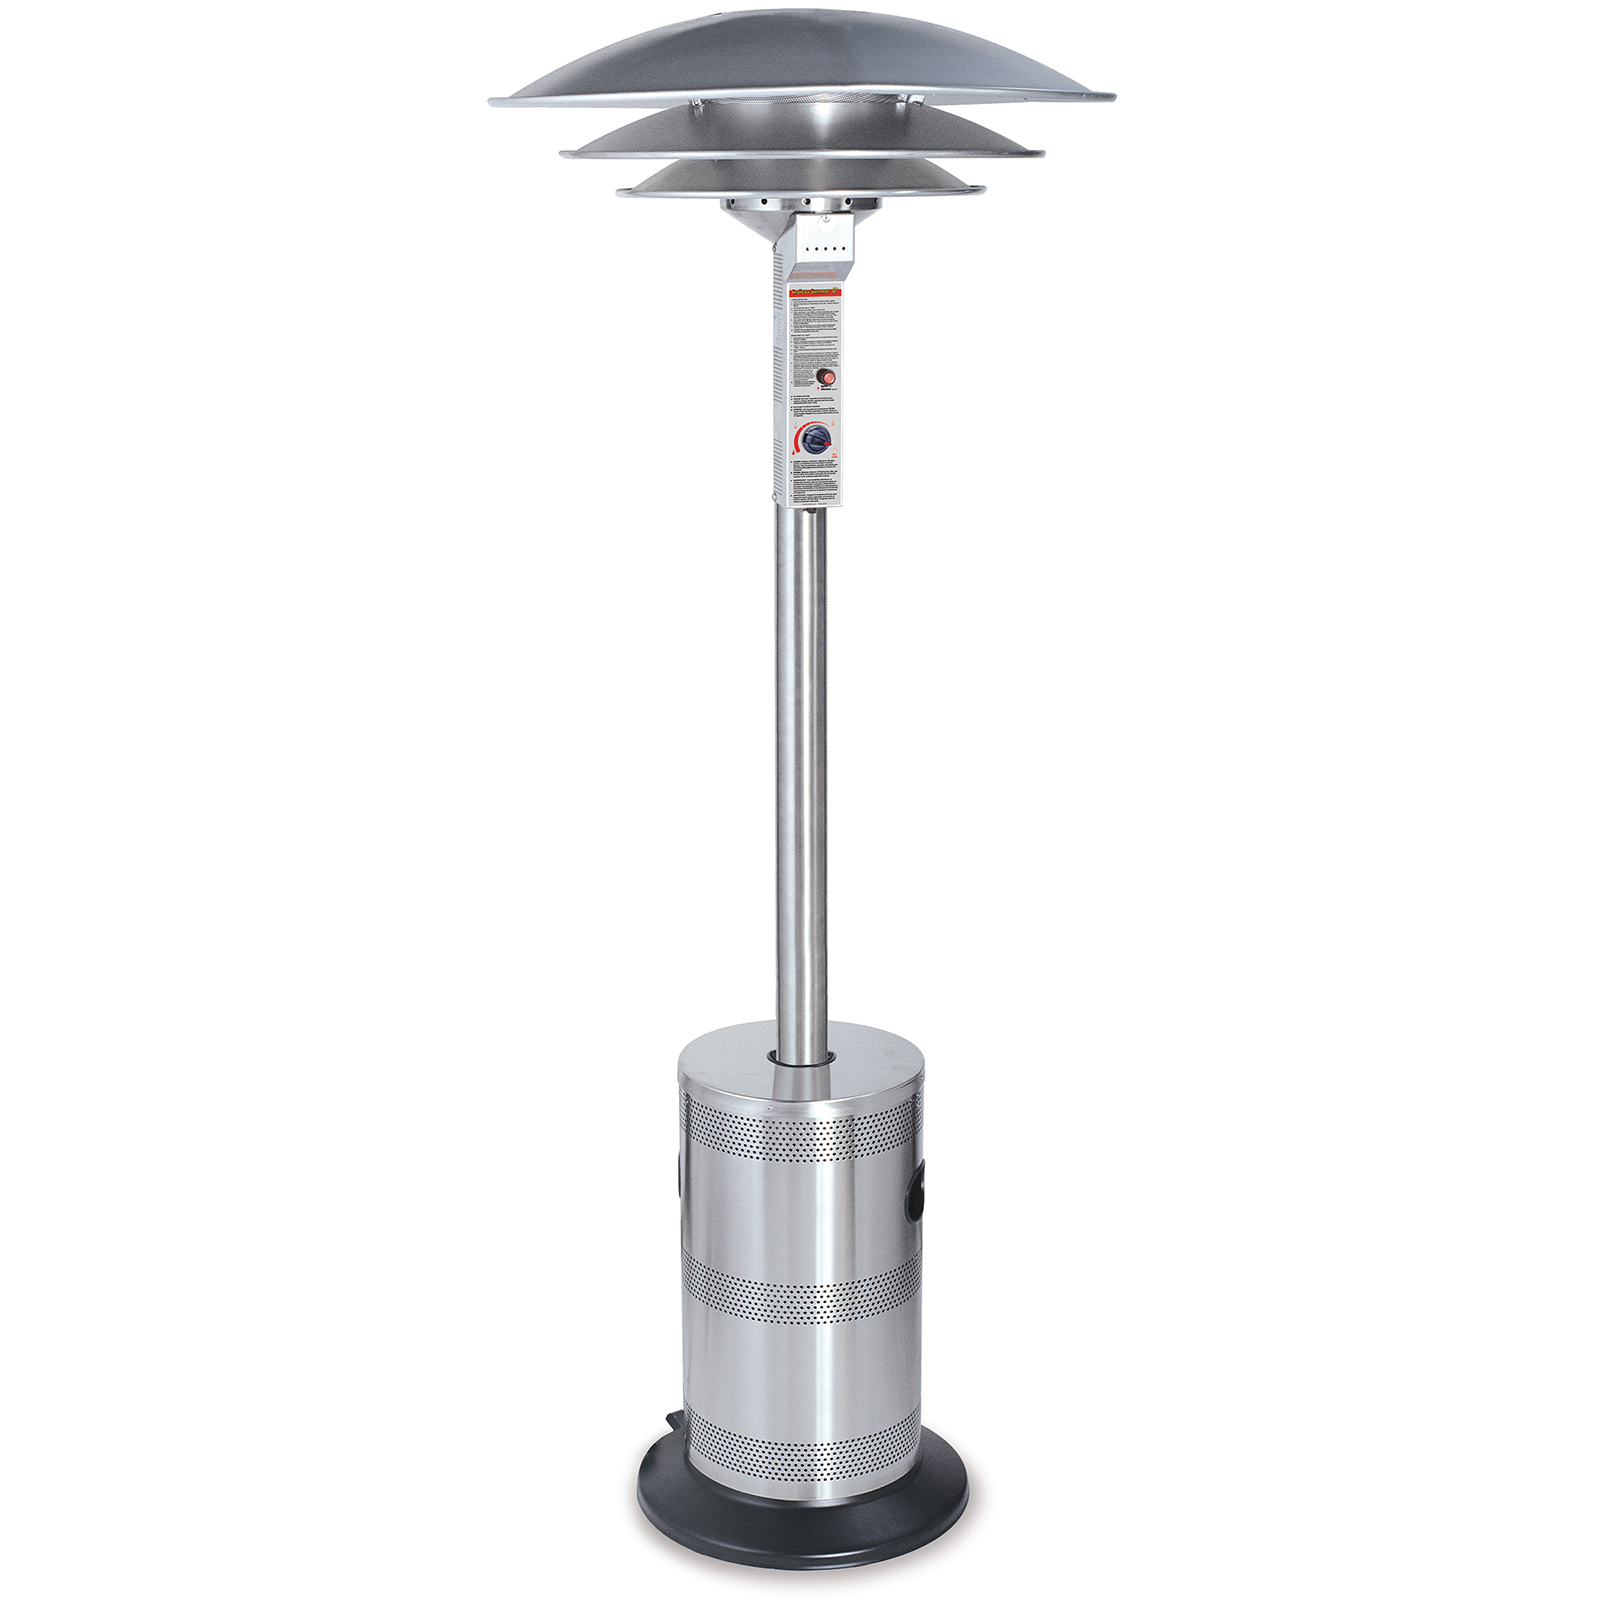 Endless Summer Patio Heater Triple Dome Stainless Steel